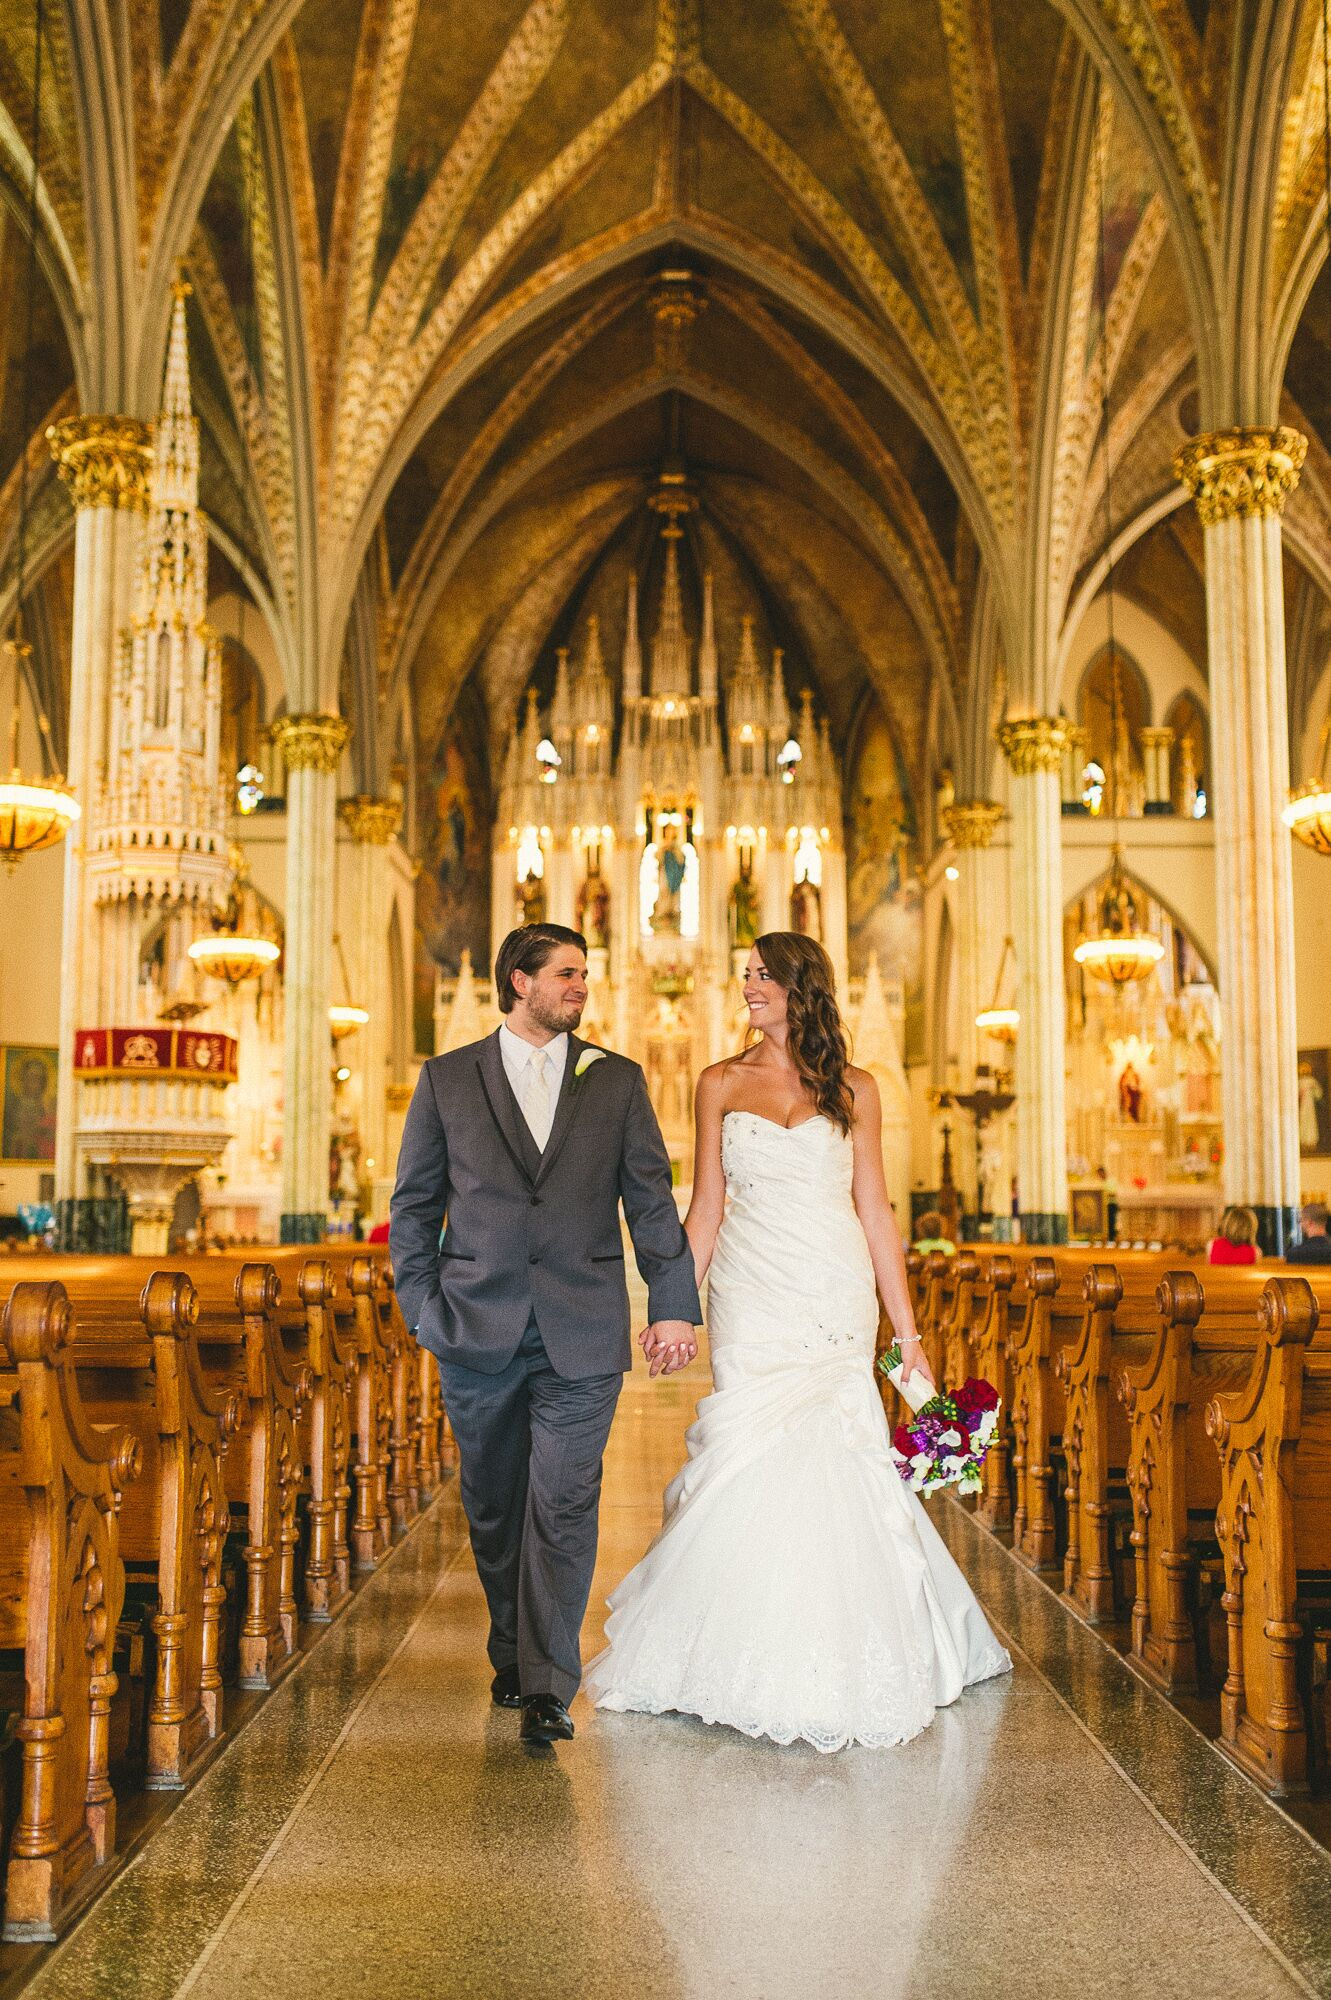 A Romantic Church Wedding At Sweetest Heart Of Mary